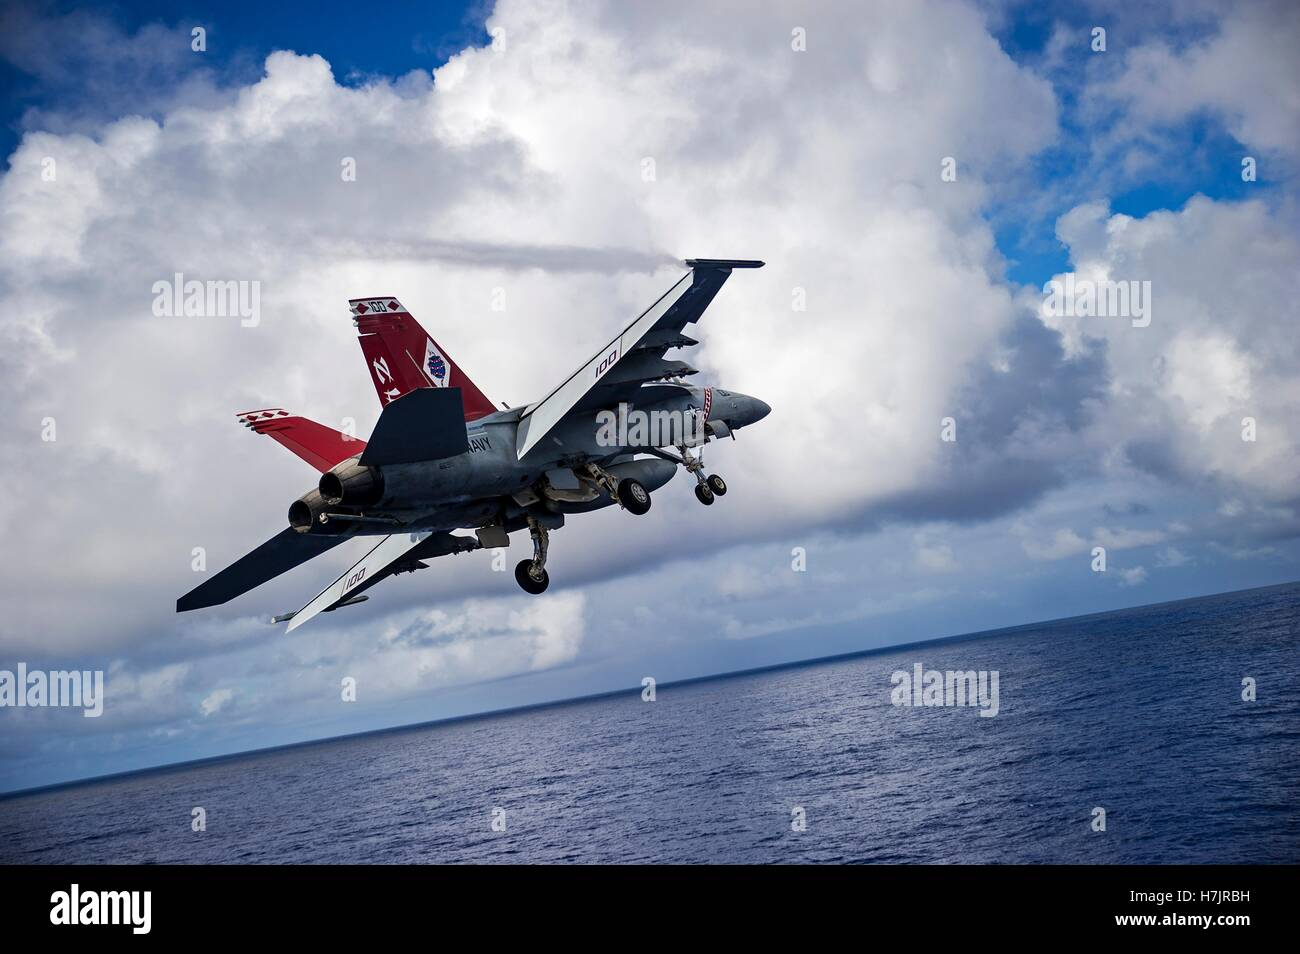 An F/A-18F Super Hornet fighter aircraft launches from the flight deck of the USN Nimitz-class aircraft carrier - Stock Image